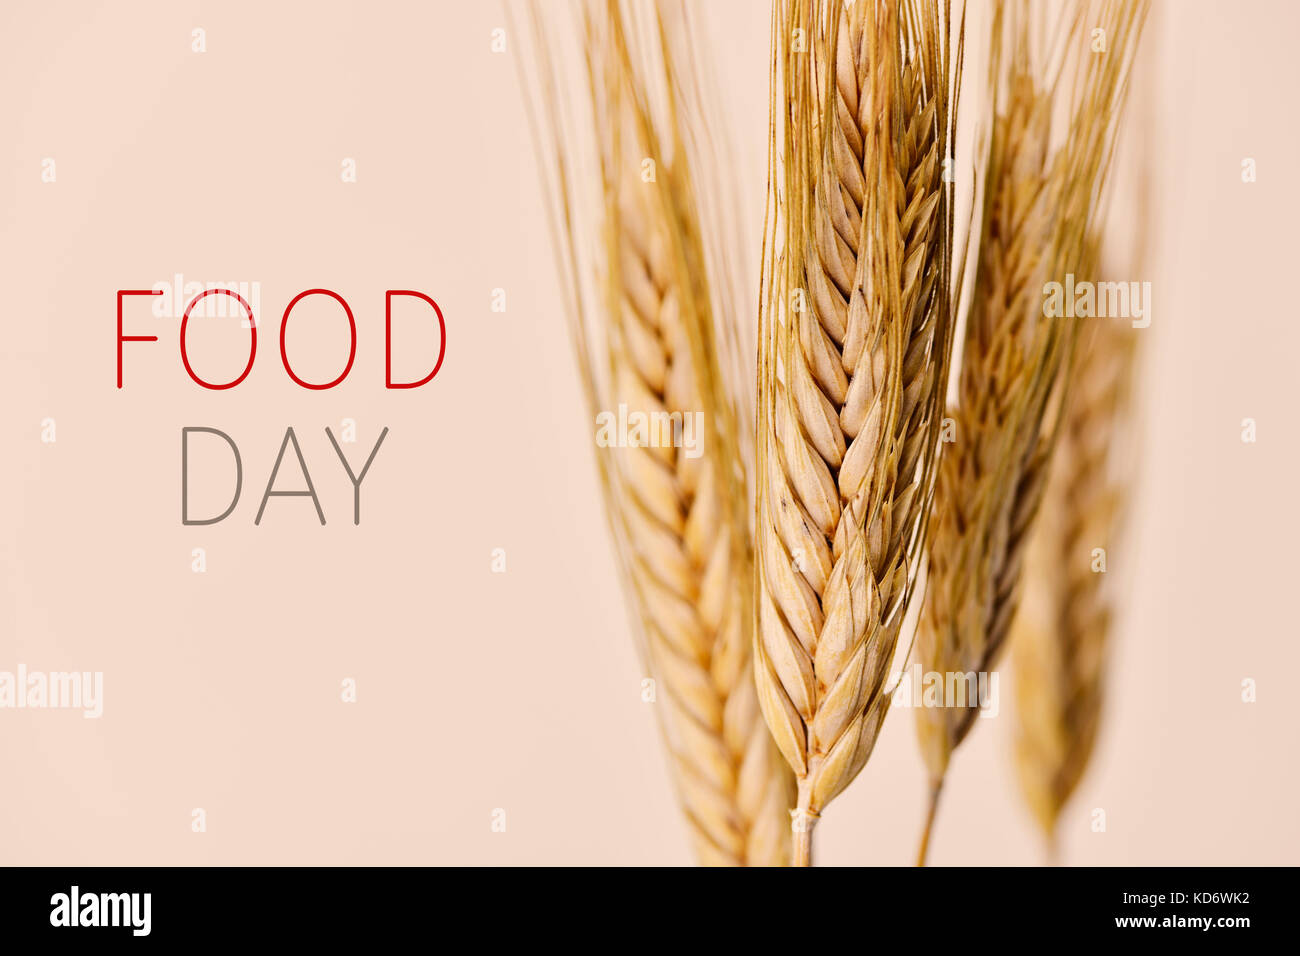 closeup of some wheat spikes and the text food day against an off-white background - Stock Image